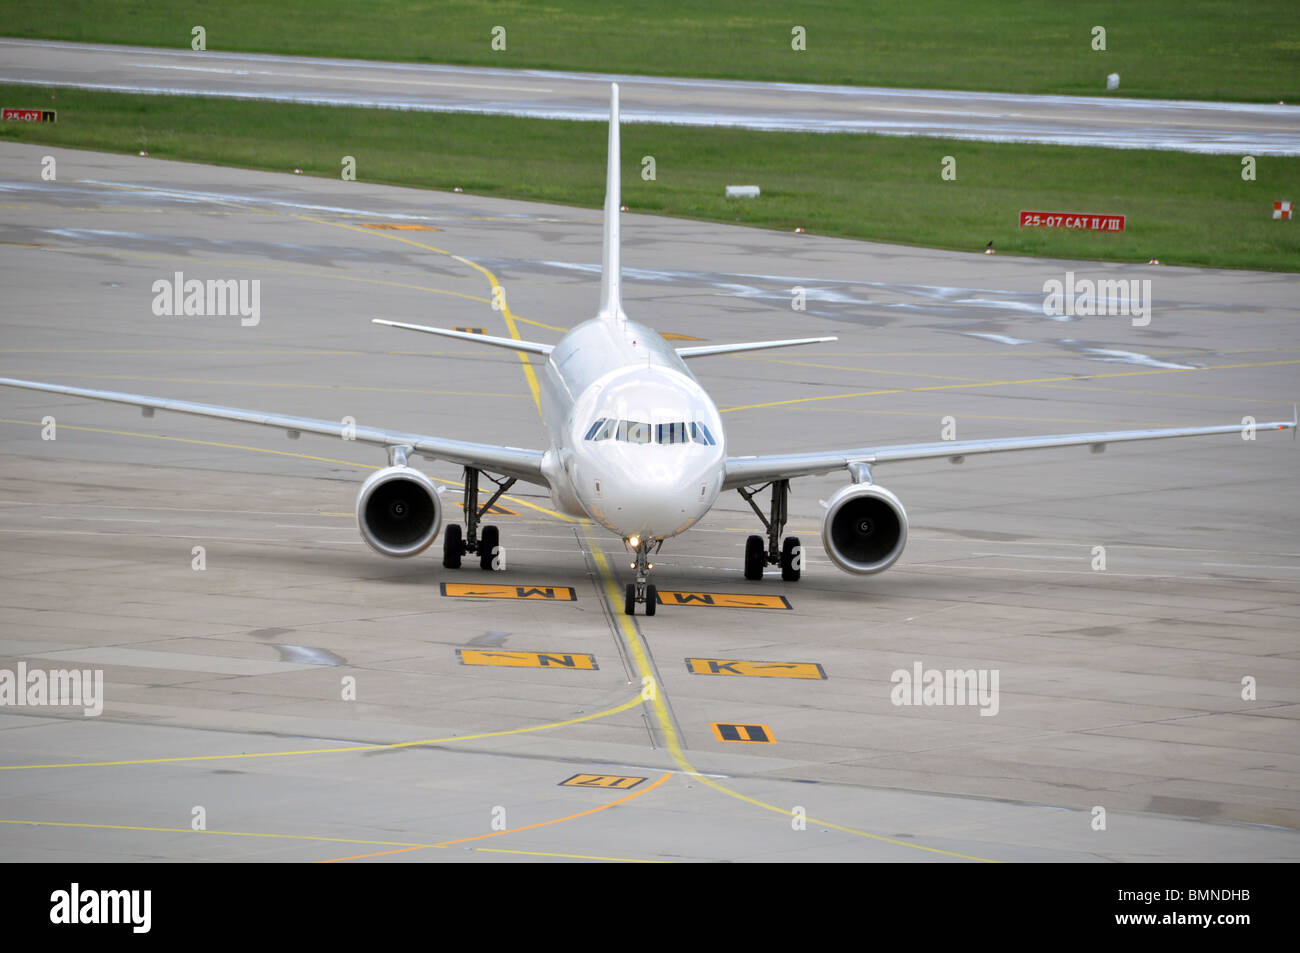 Large airplane taxiing to parking position at international airport - Stock Image